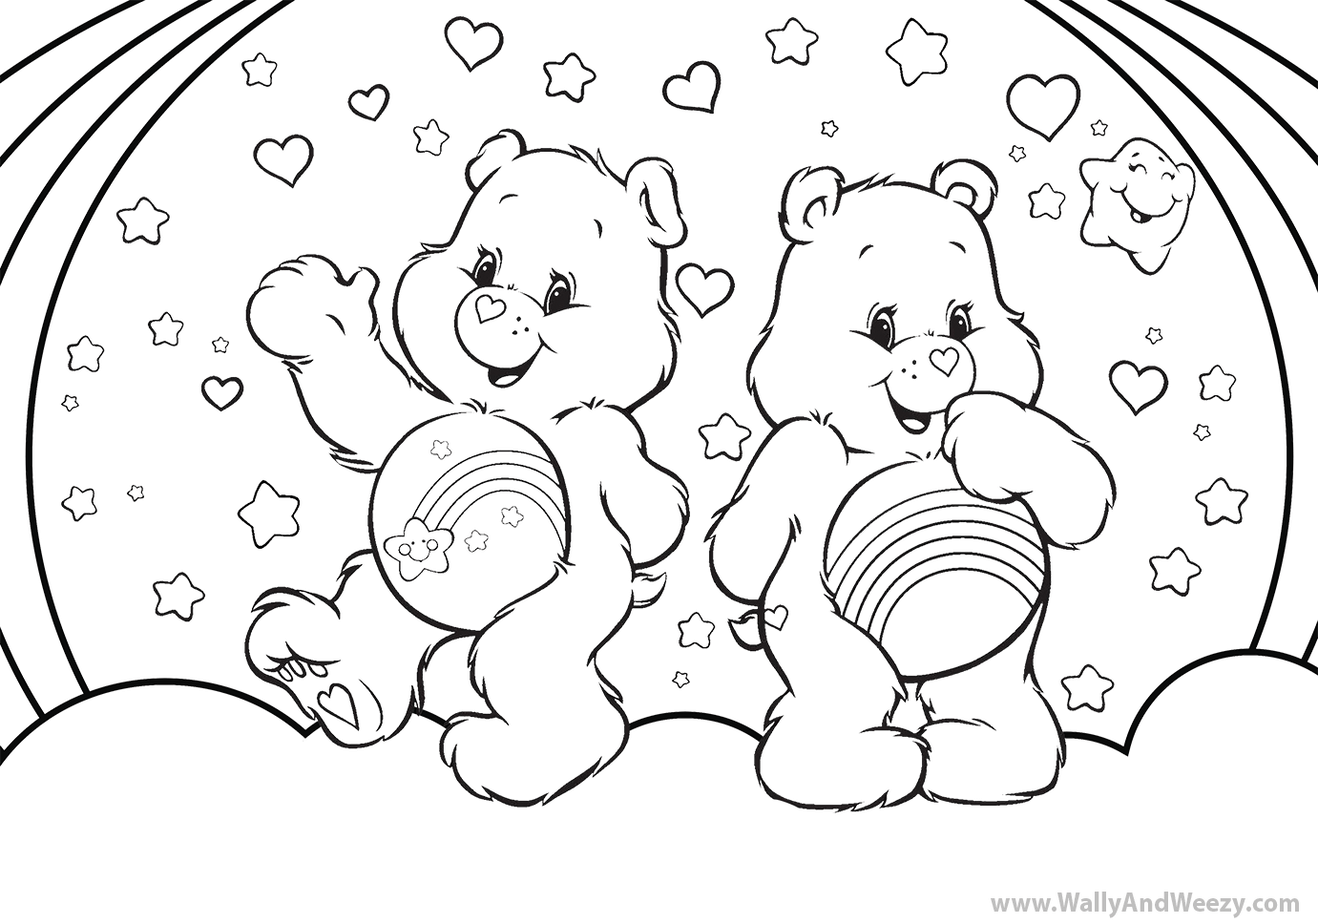 carebears-coloring-page